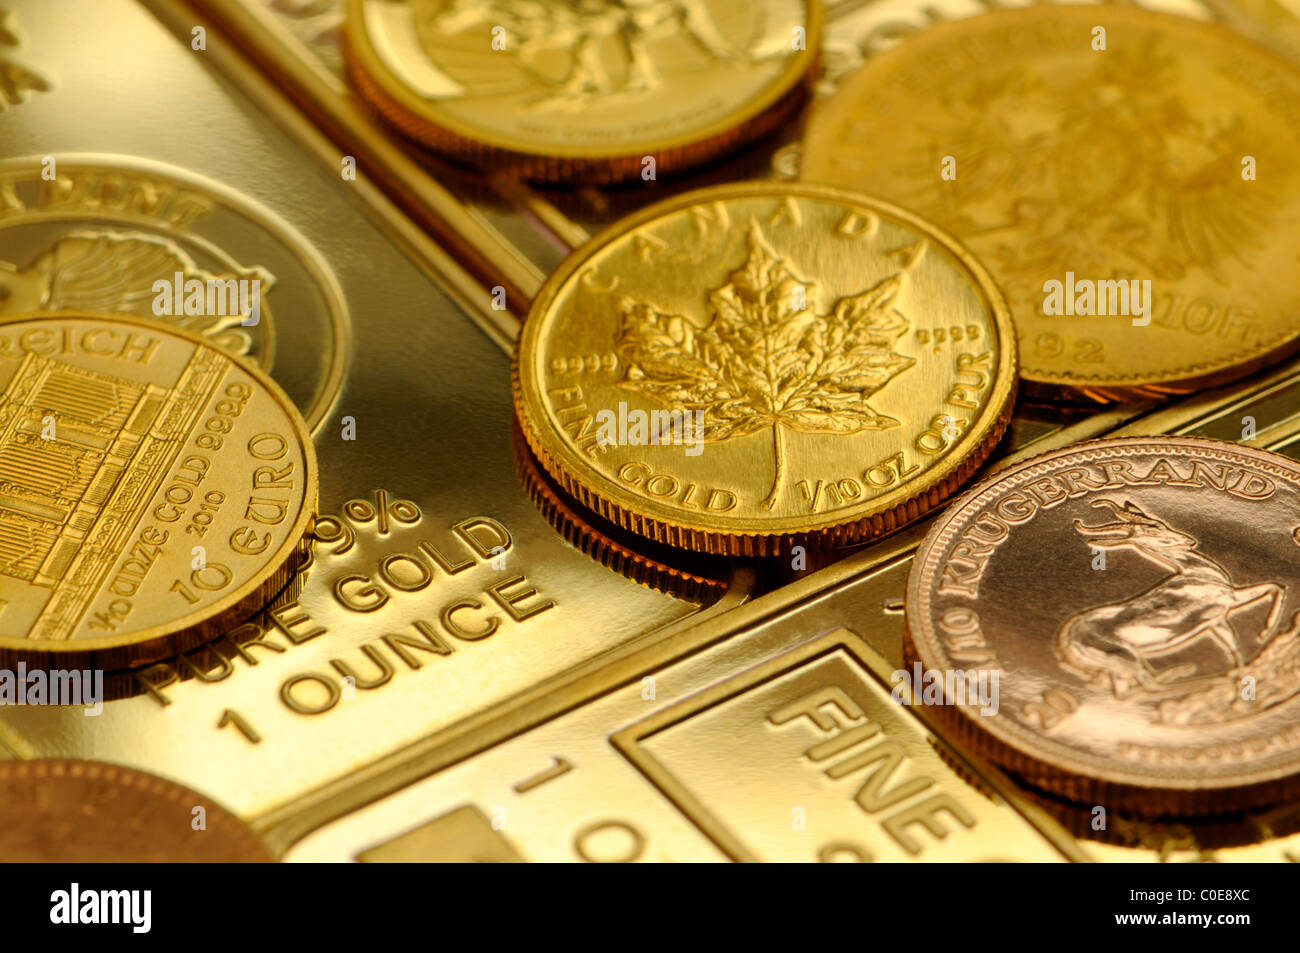 Gold Bullion - 1oz bars and small coins - Stock Image